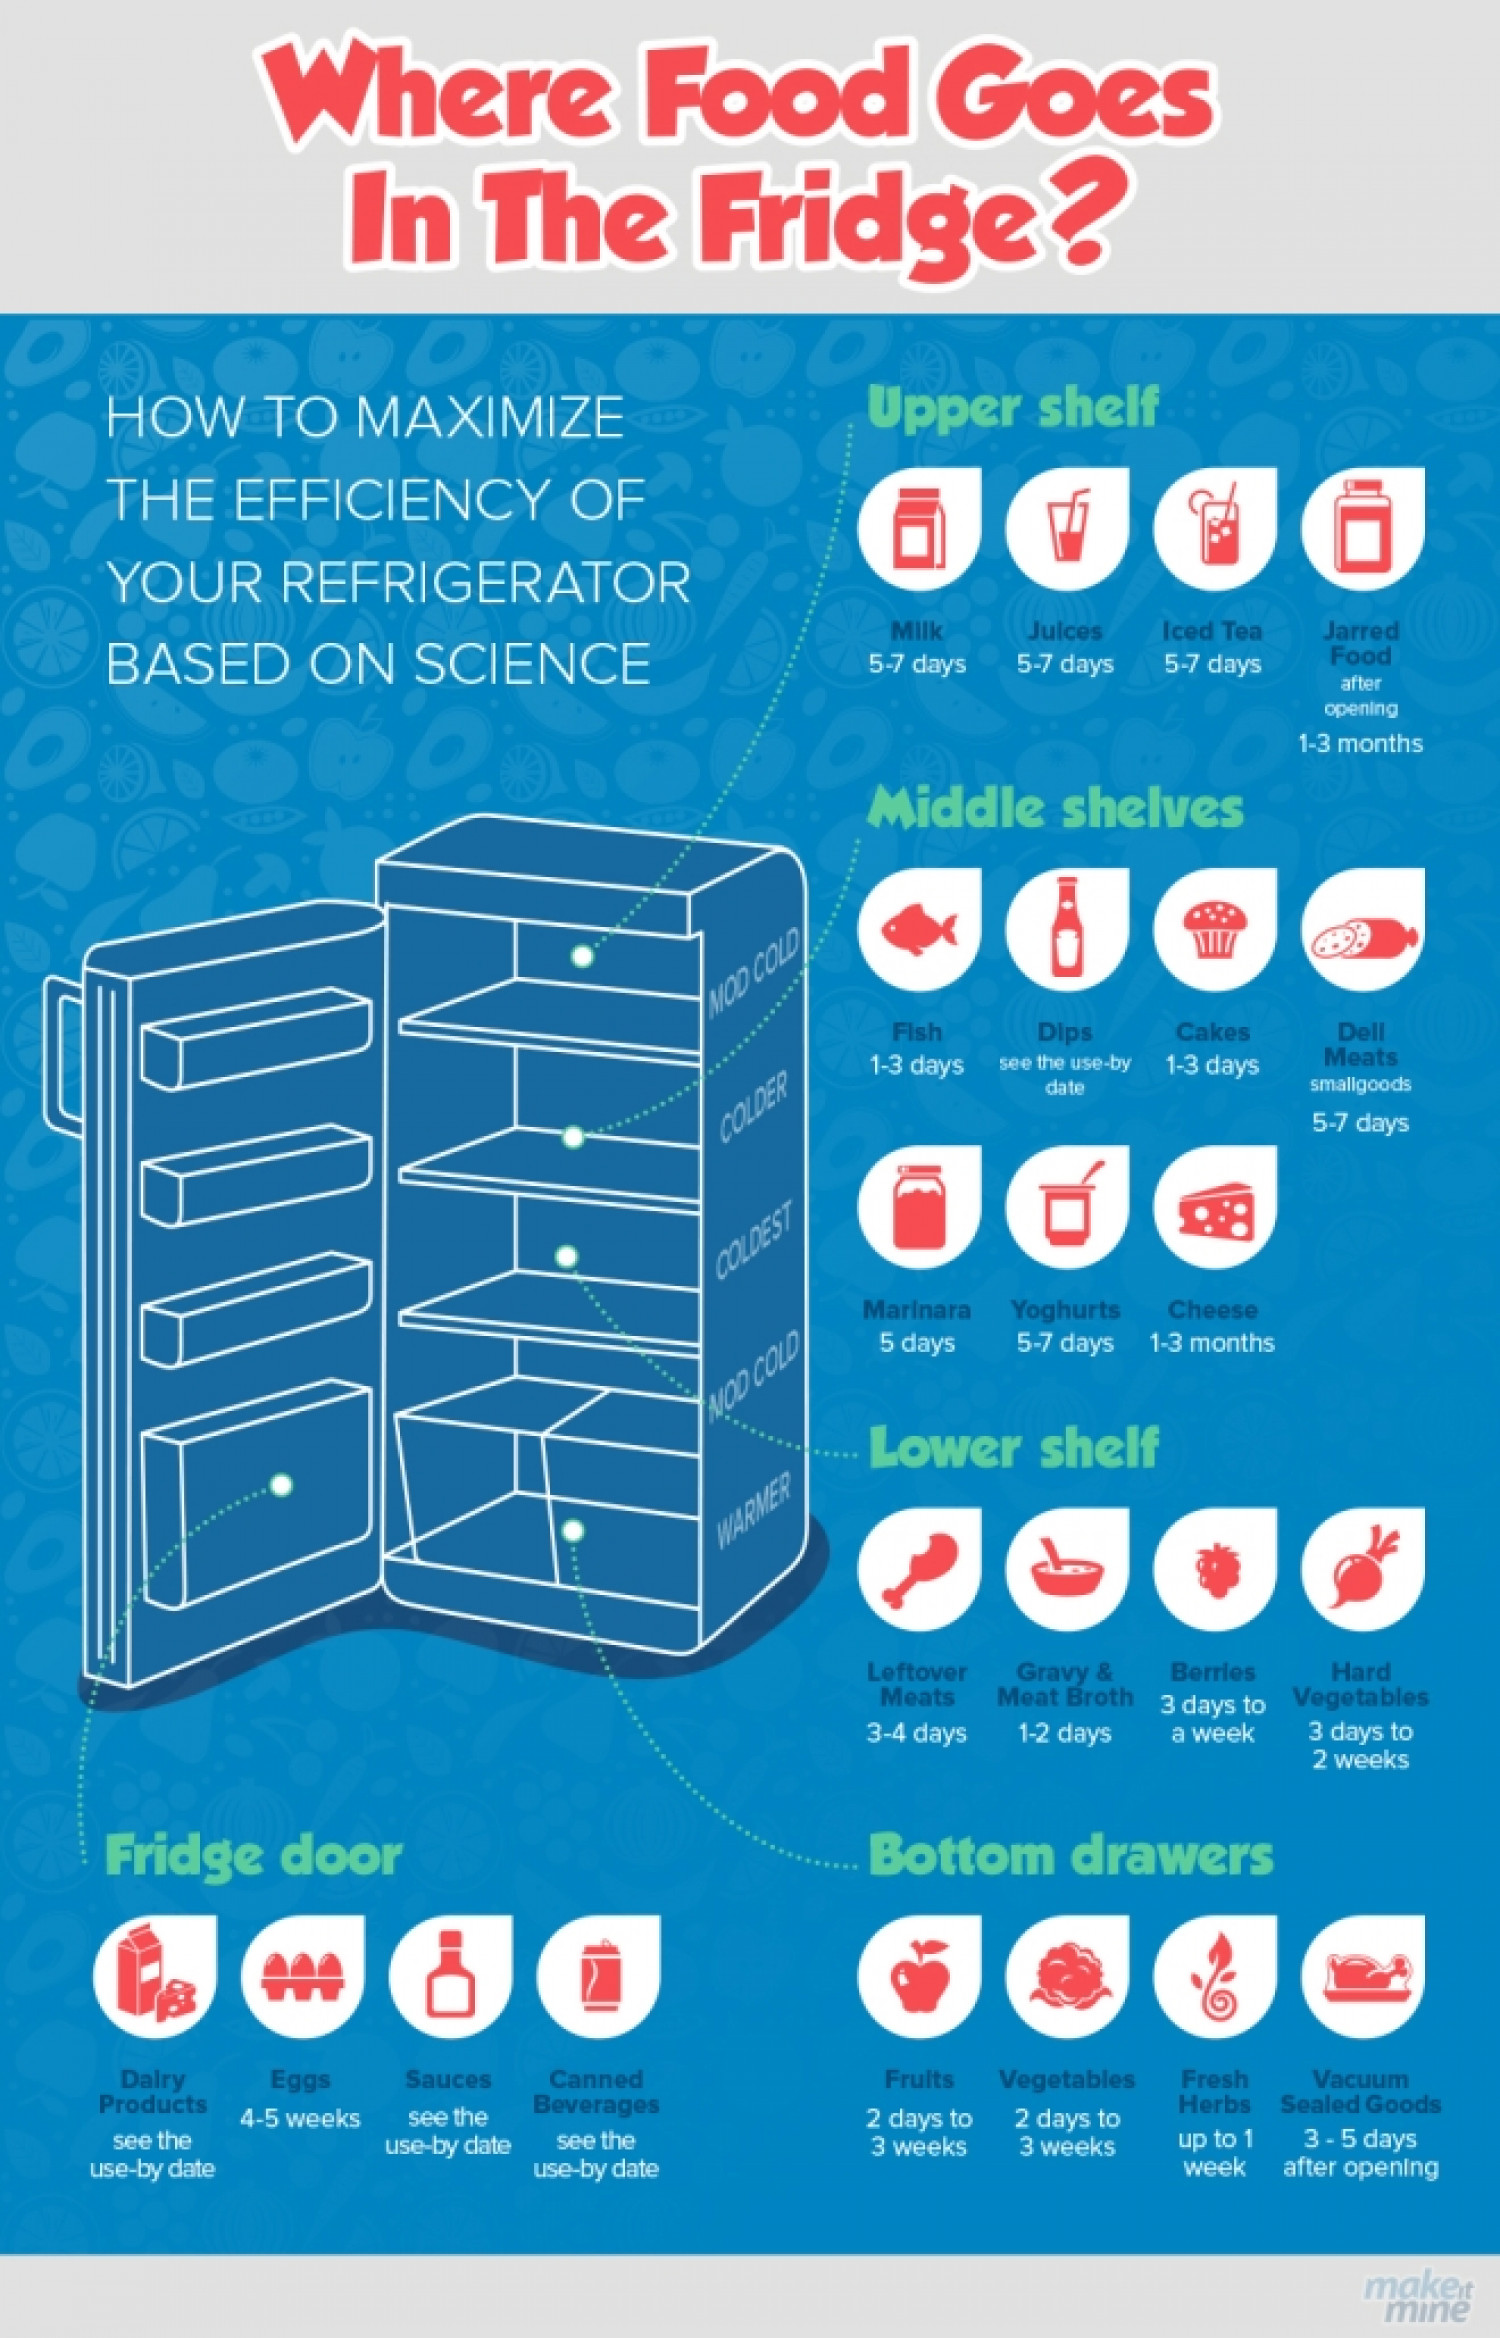 Storing Food Safely in the Fridge Infographic